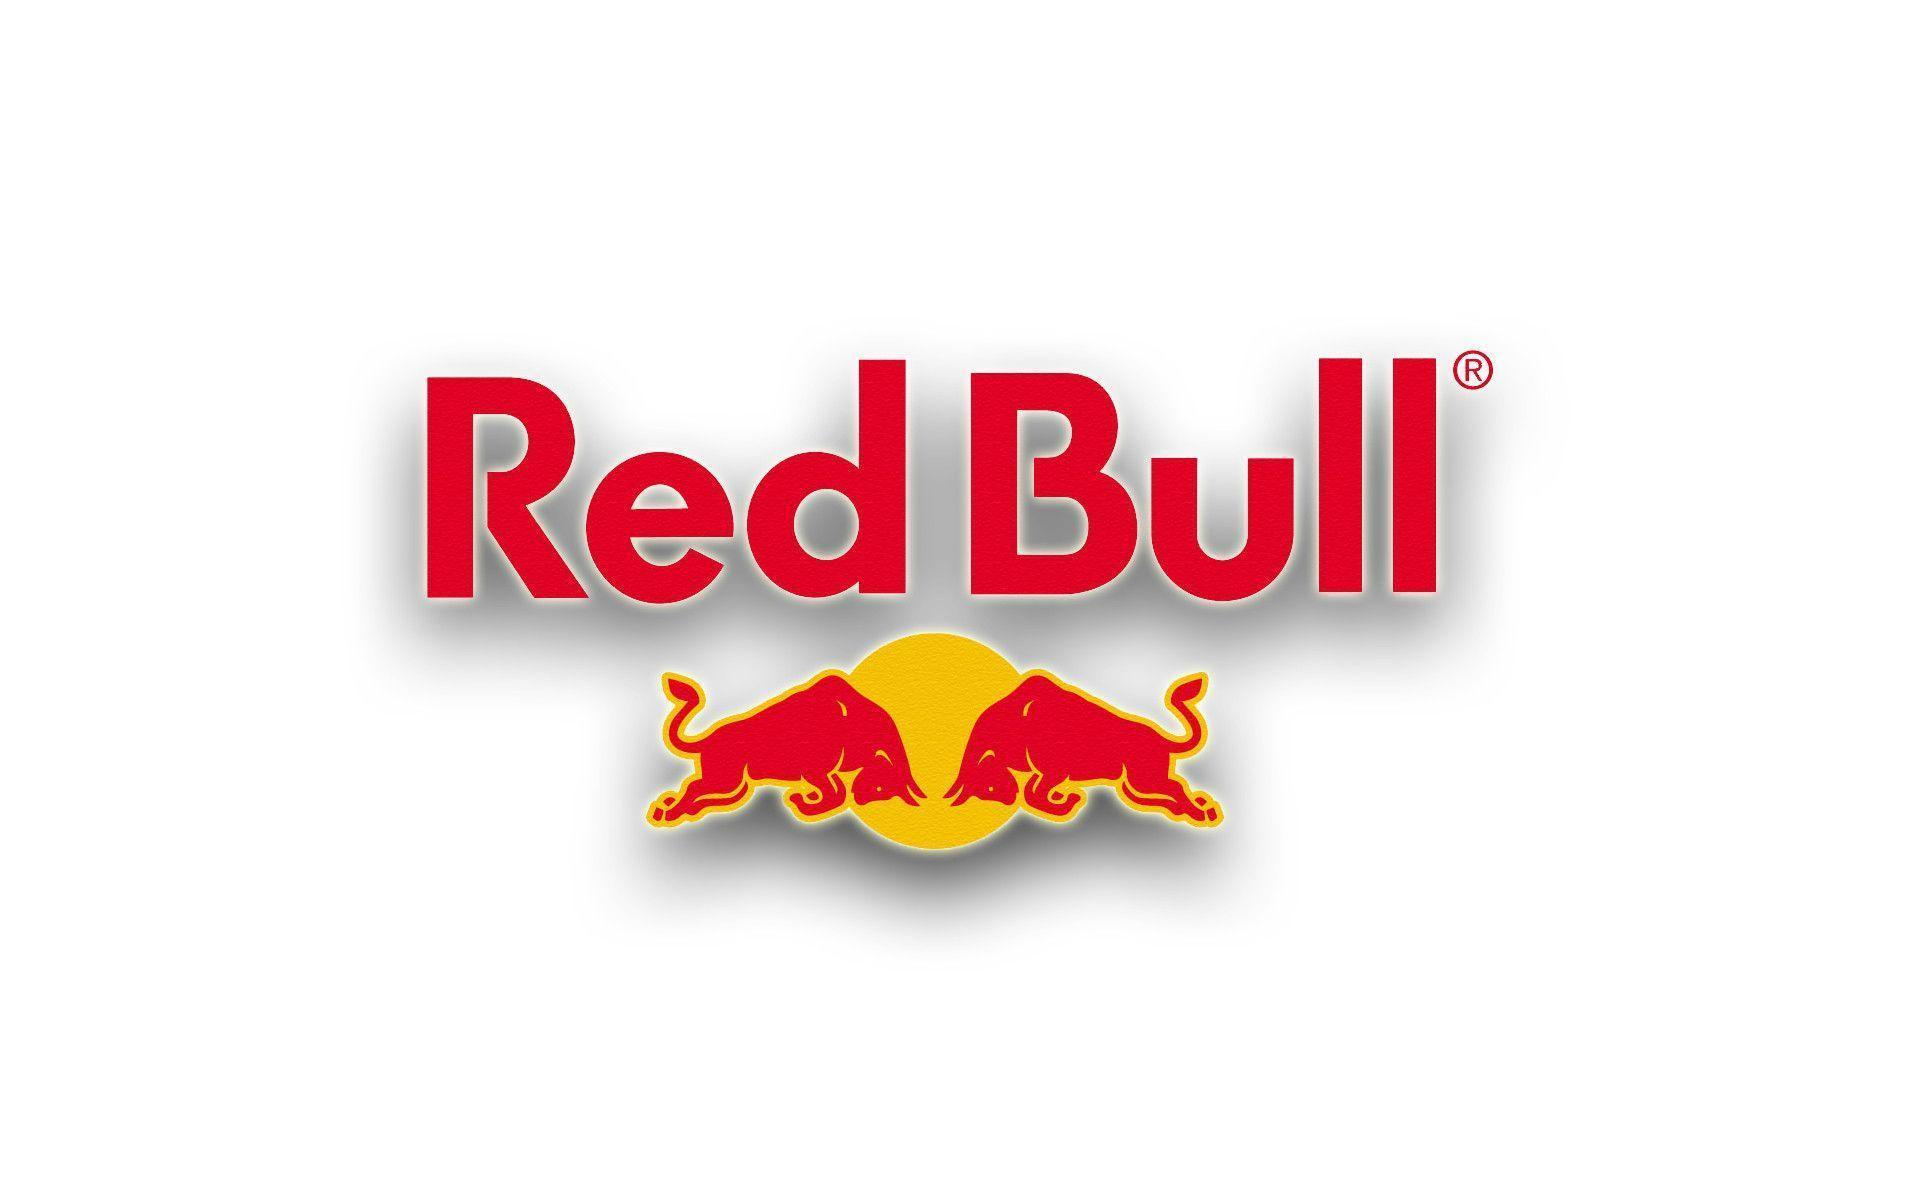 Free Red Bull Logo Energy Drink Wallpapers HD Picture Image